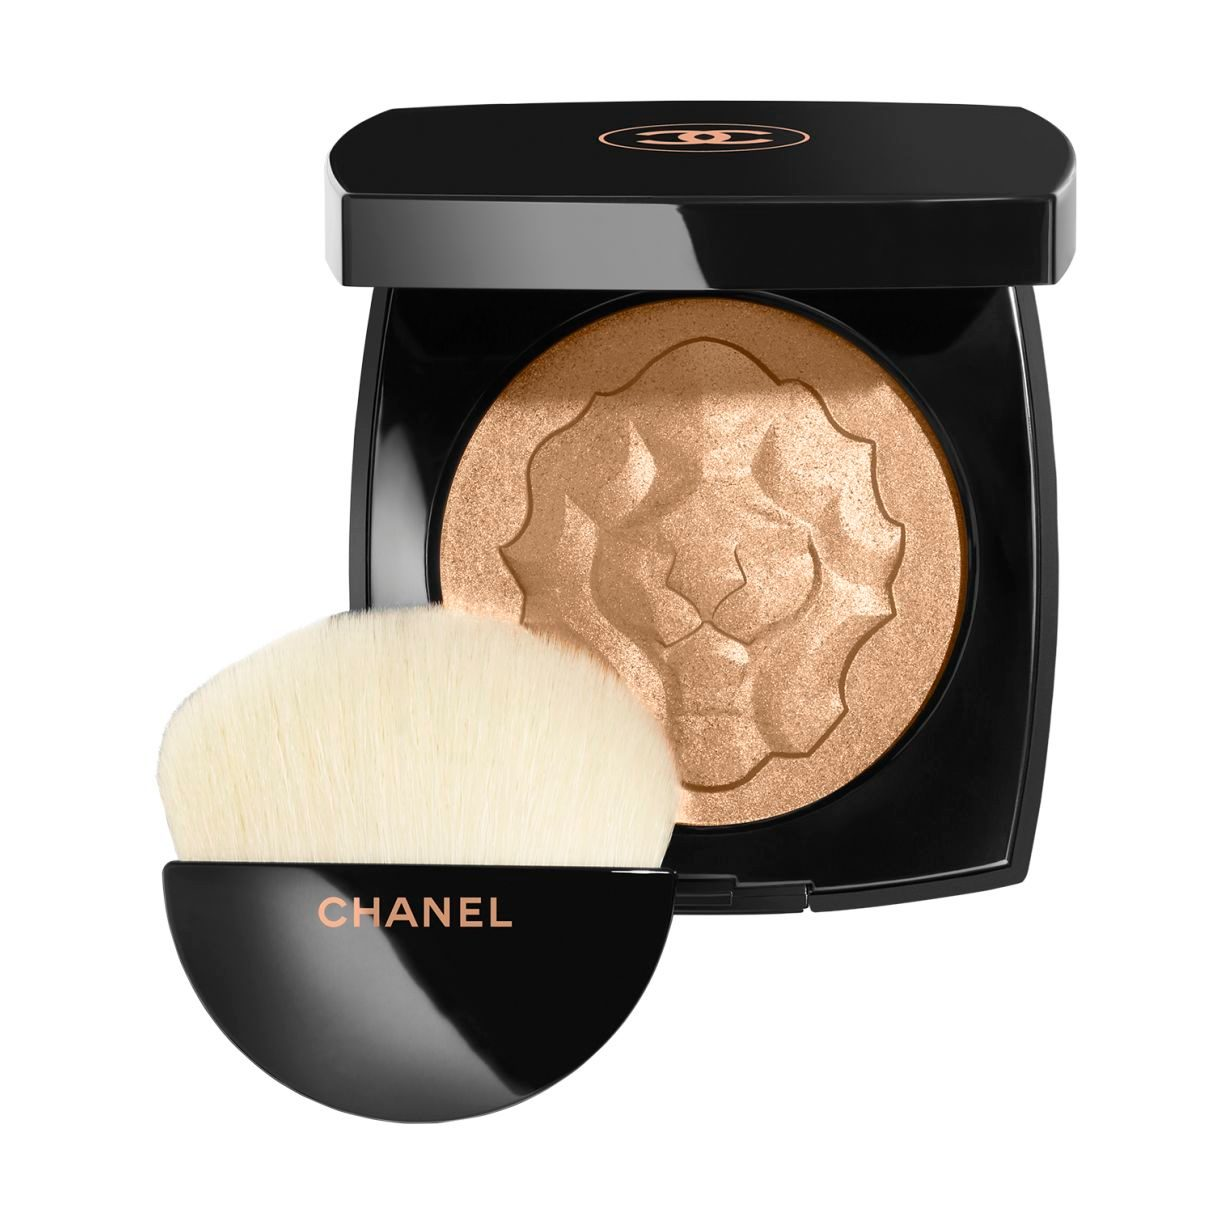 LE LION DE CHANEL EXCLUSIVE CREATION. FACE HIGHLIGHTING POWDER 8g